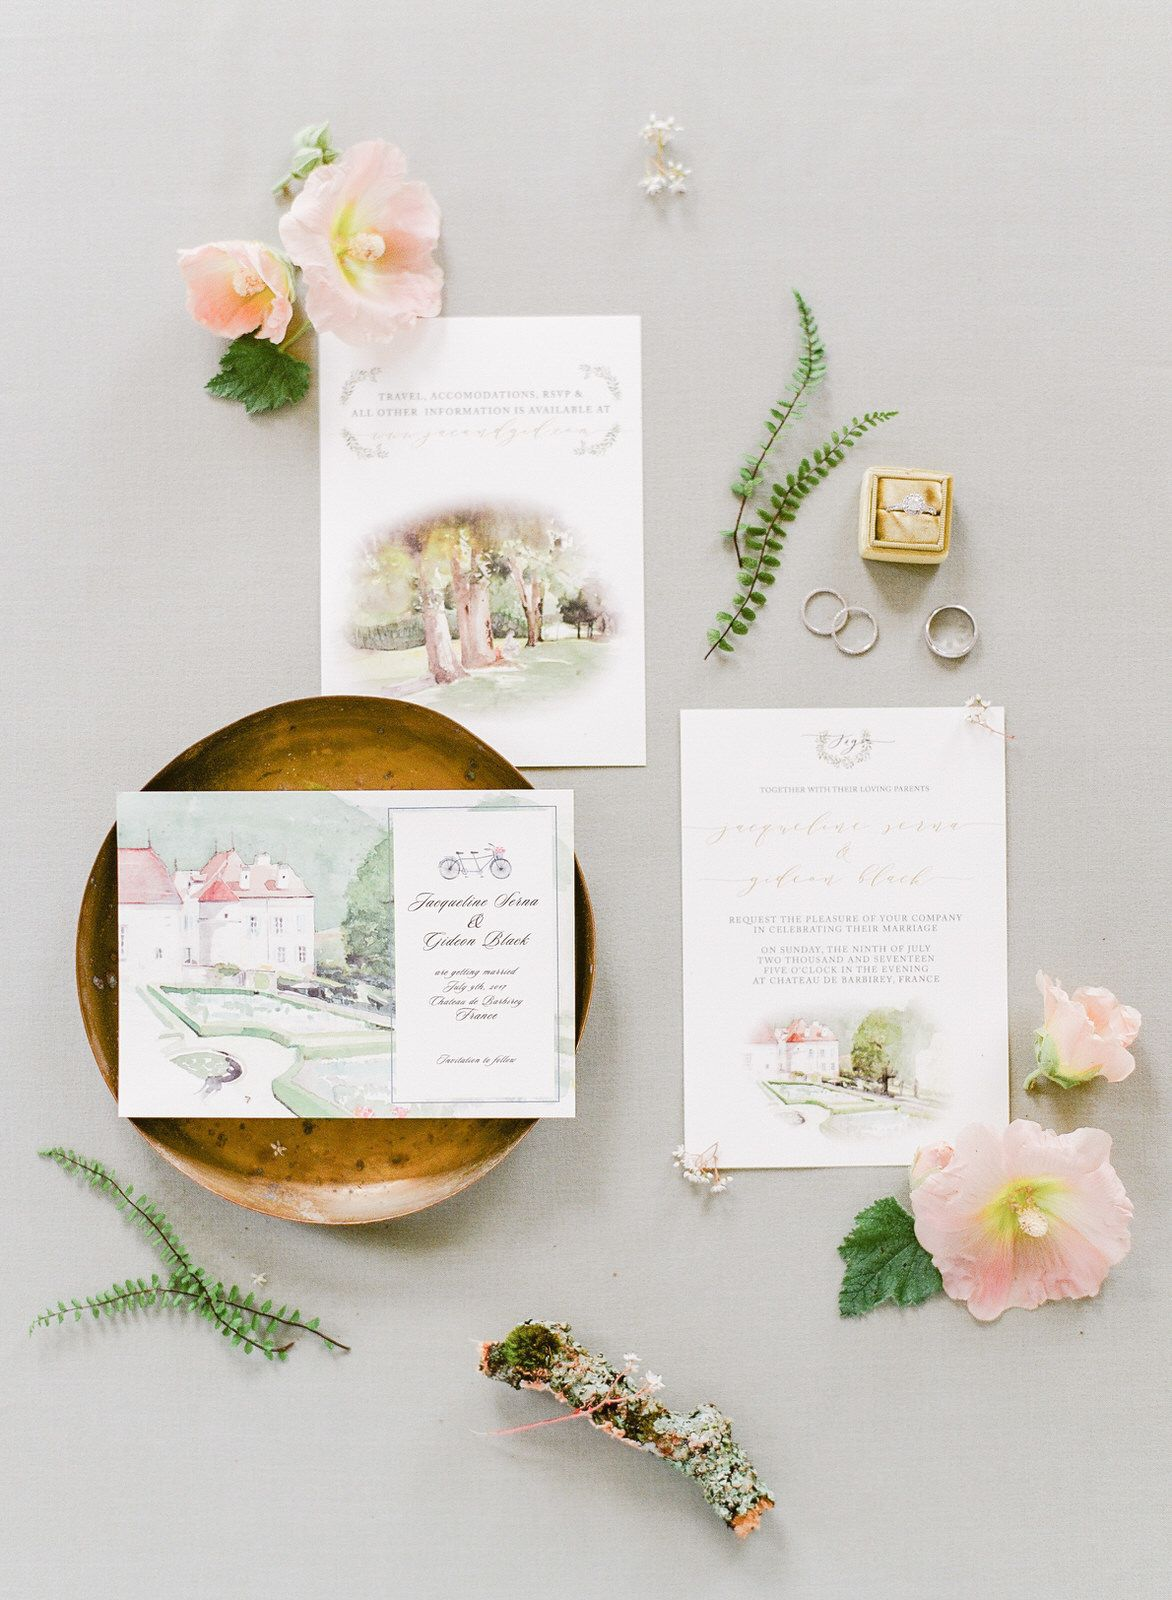 paper style wedding invitations%0A Watercolor Paintings Inspired This French Countryside Wedding